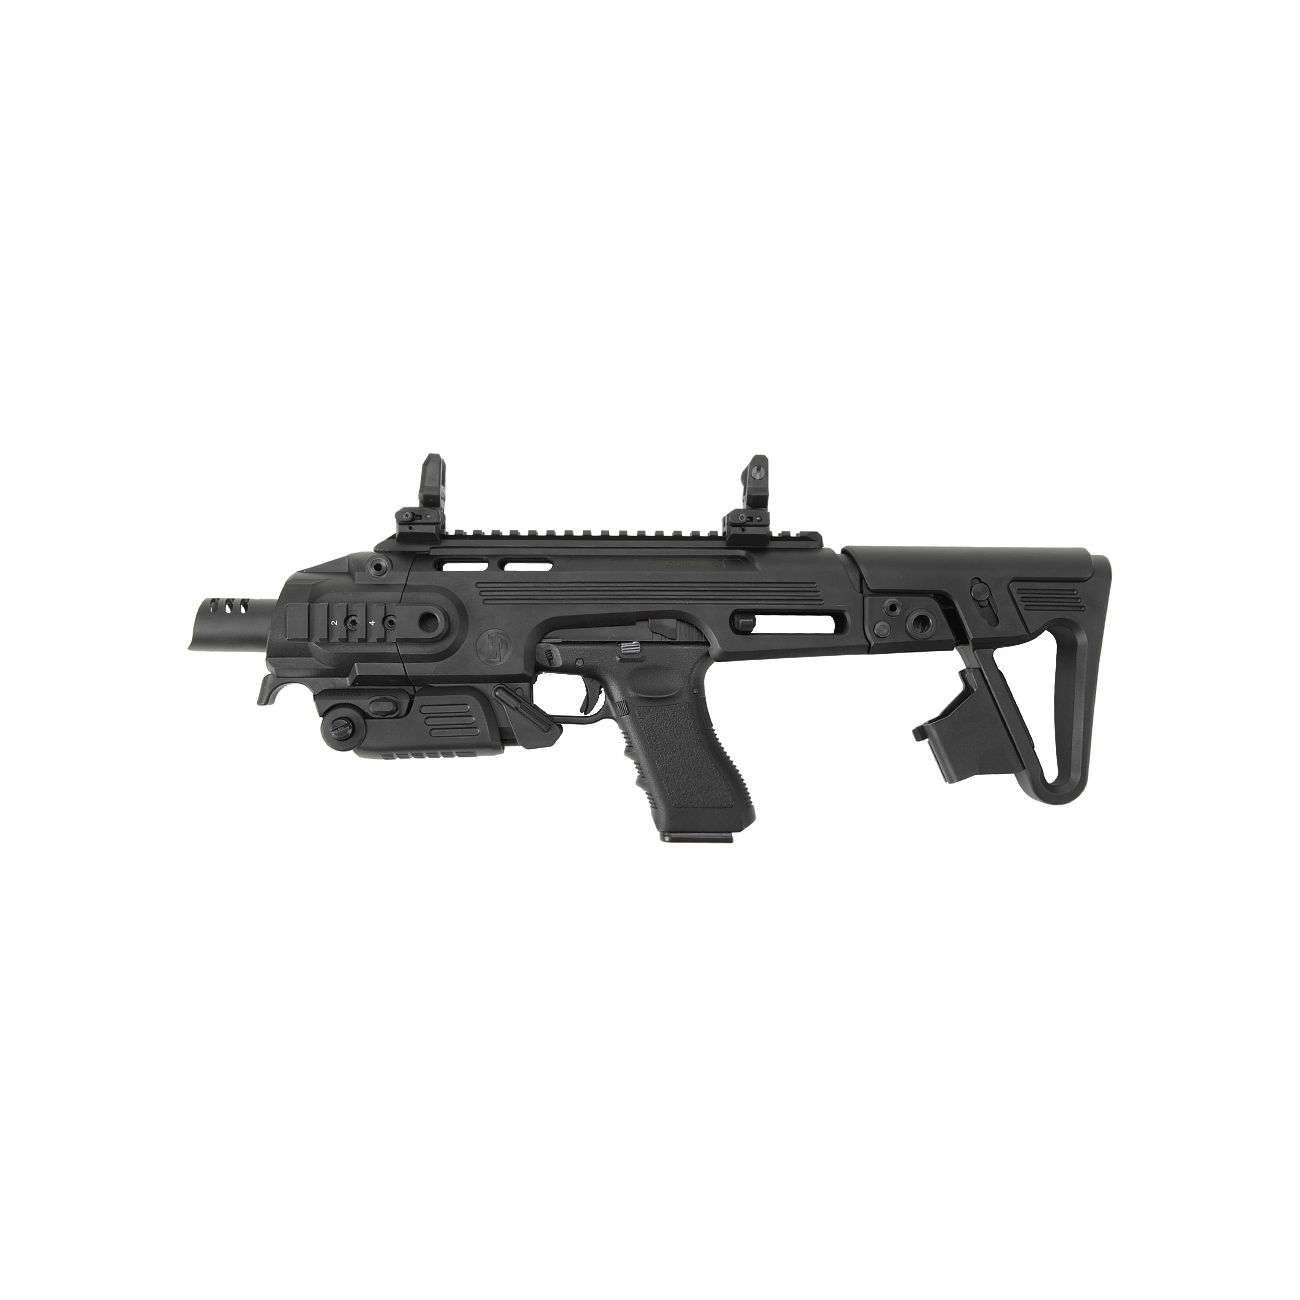 CAA Airsoft Division RONI Carbine Conversion Kit f. TM / KSC / WE G17 / G18C / G18 / G23F schwarz 3